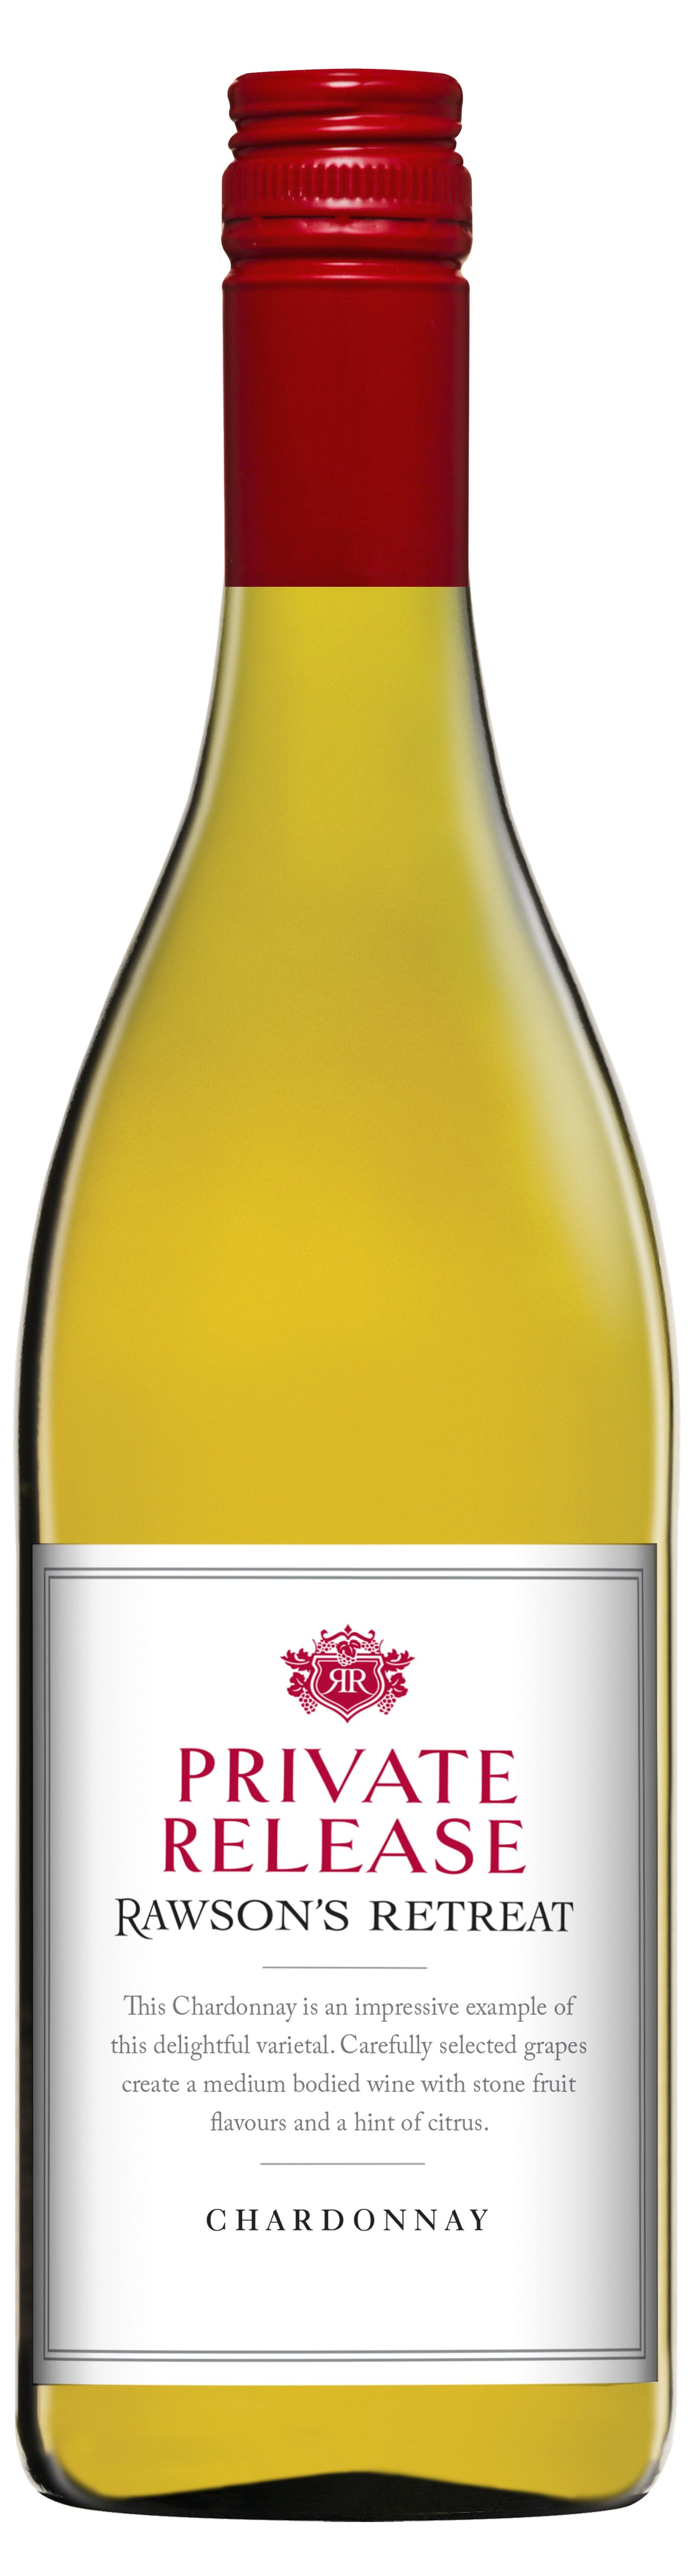 Private Release Rawson's Retreat Chardonnay - Penfolds